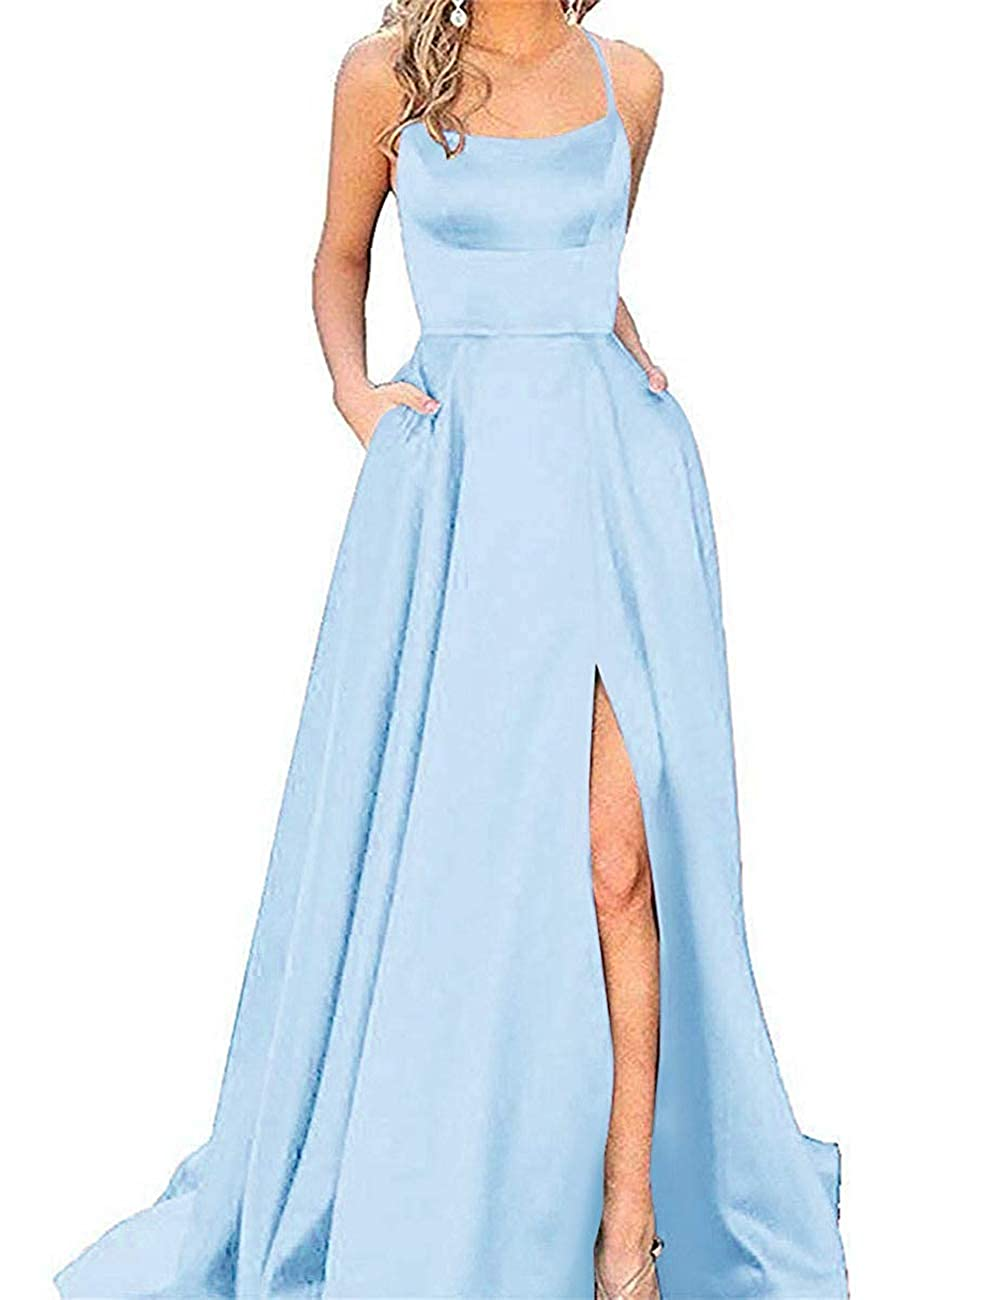 Light bluee APXPF Women's Spaghetti Straps Satin Prom Dress Long Split ALine Formal Party Gown with Pockets